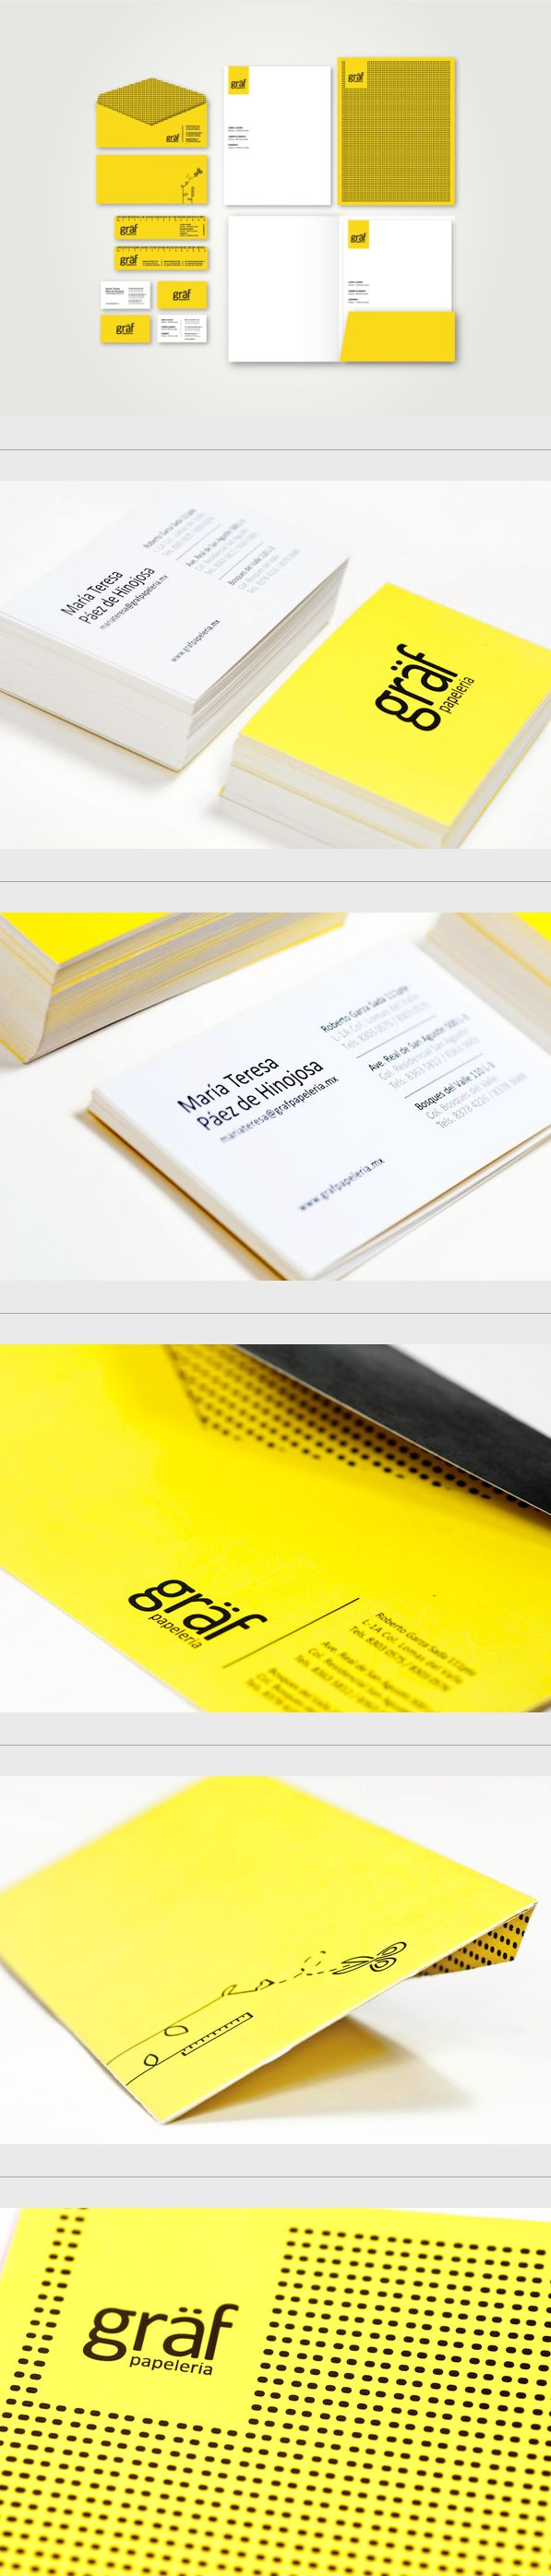 Graf Papelería by Spectro, via Behance | #stationary #corporate #design #corporatedesign #identity #branding #marketing < repinned by www.BlickeDeeler.de | Take a look at www.LogoGestaltung-Hamburg.de